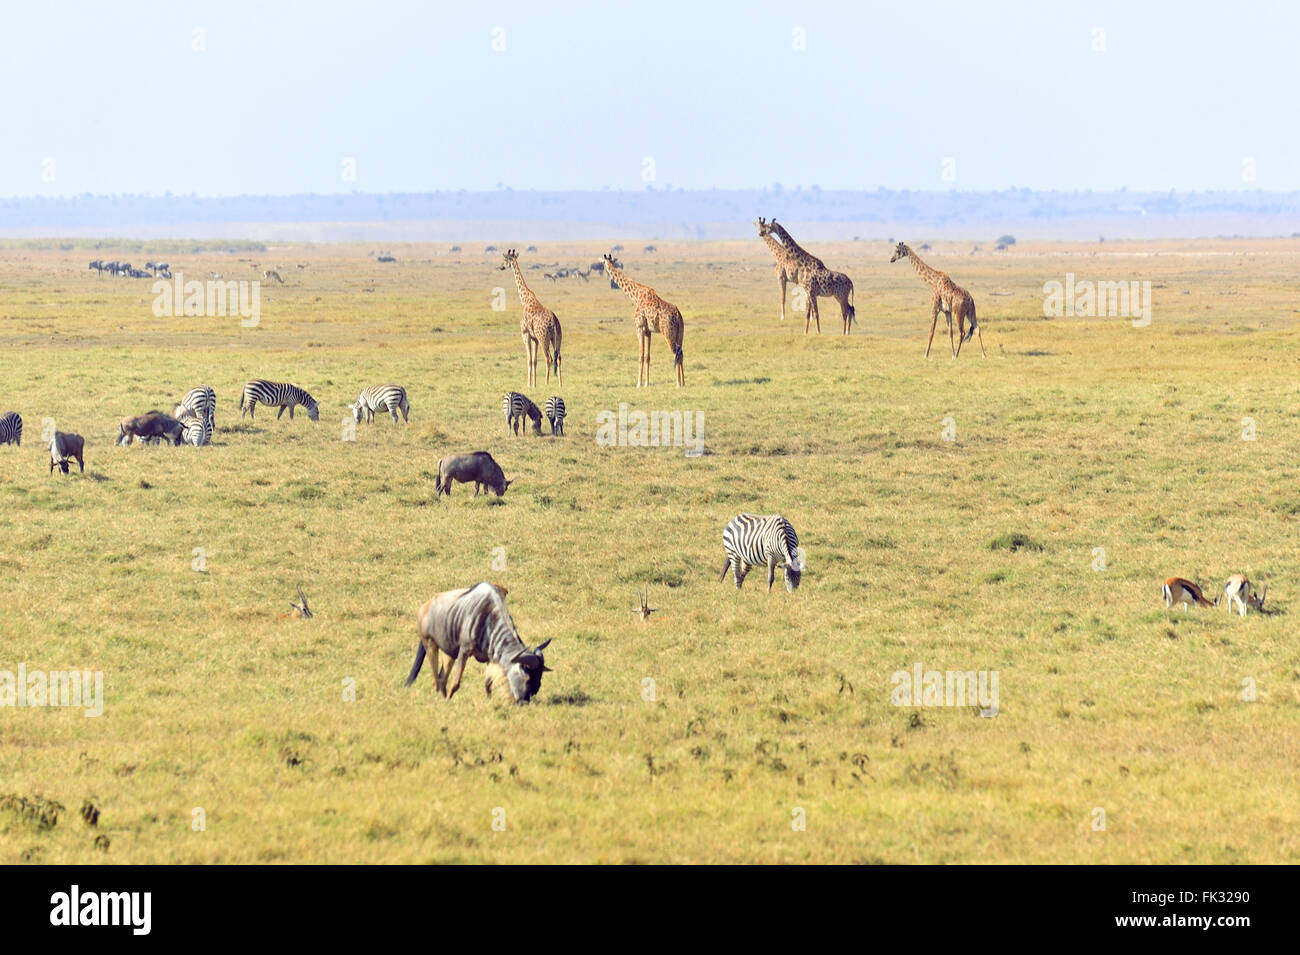 African Savannah with different animals, Kenya - Stock Image